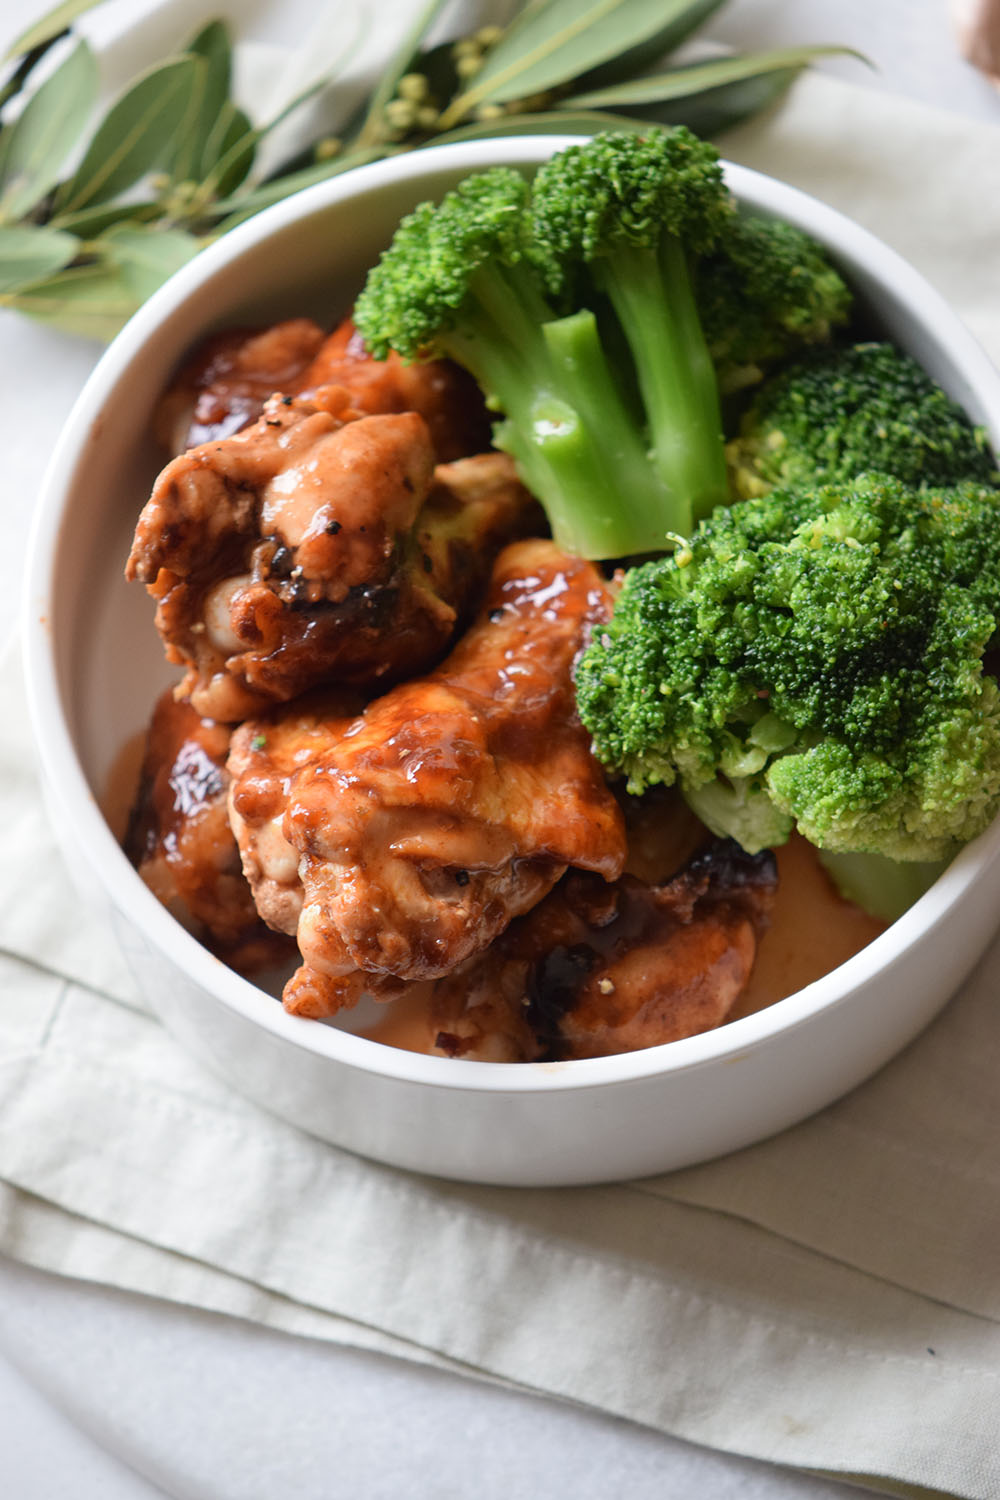 Baked Firecracker Chicken Wings recipe